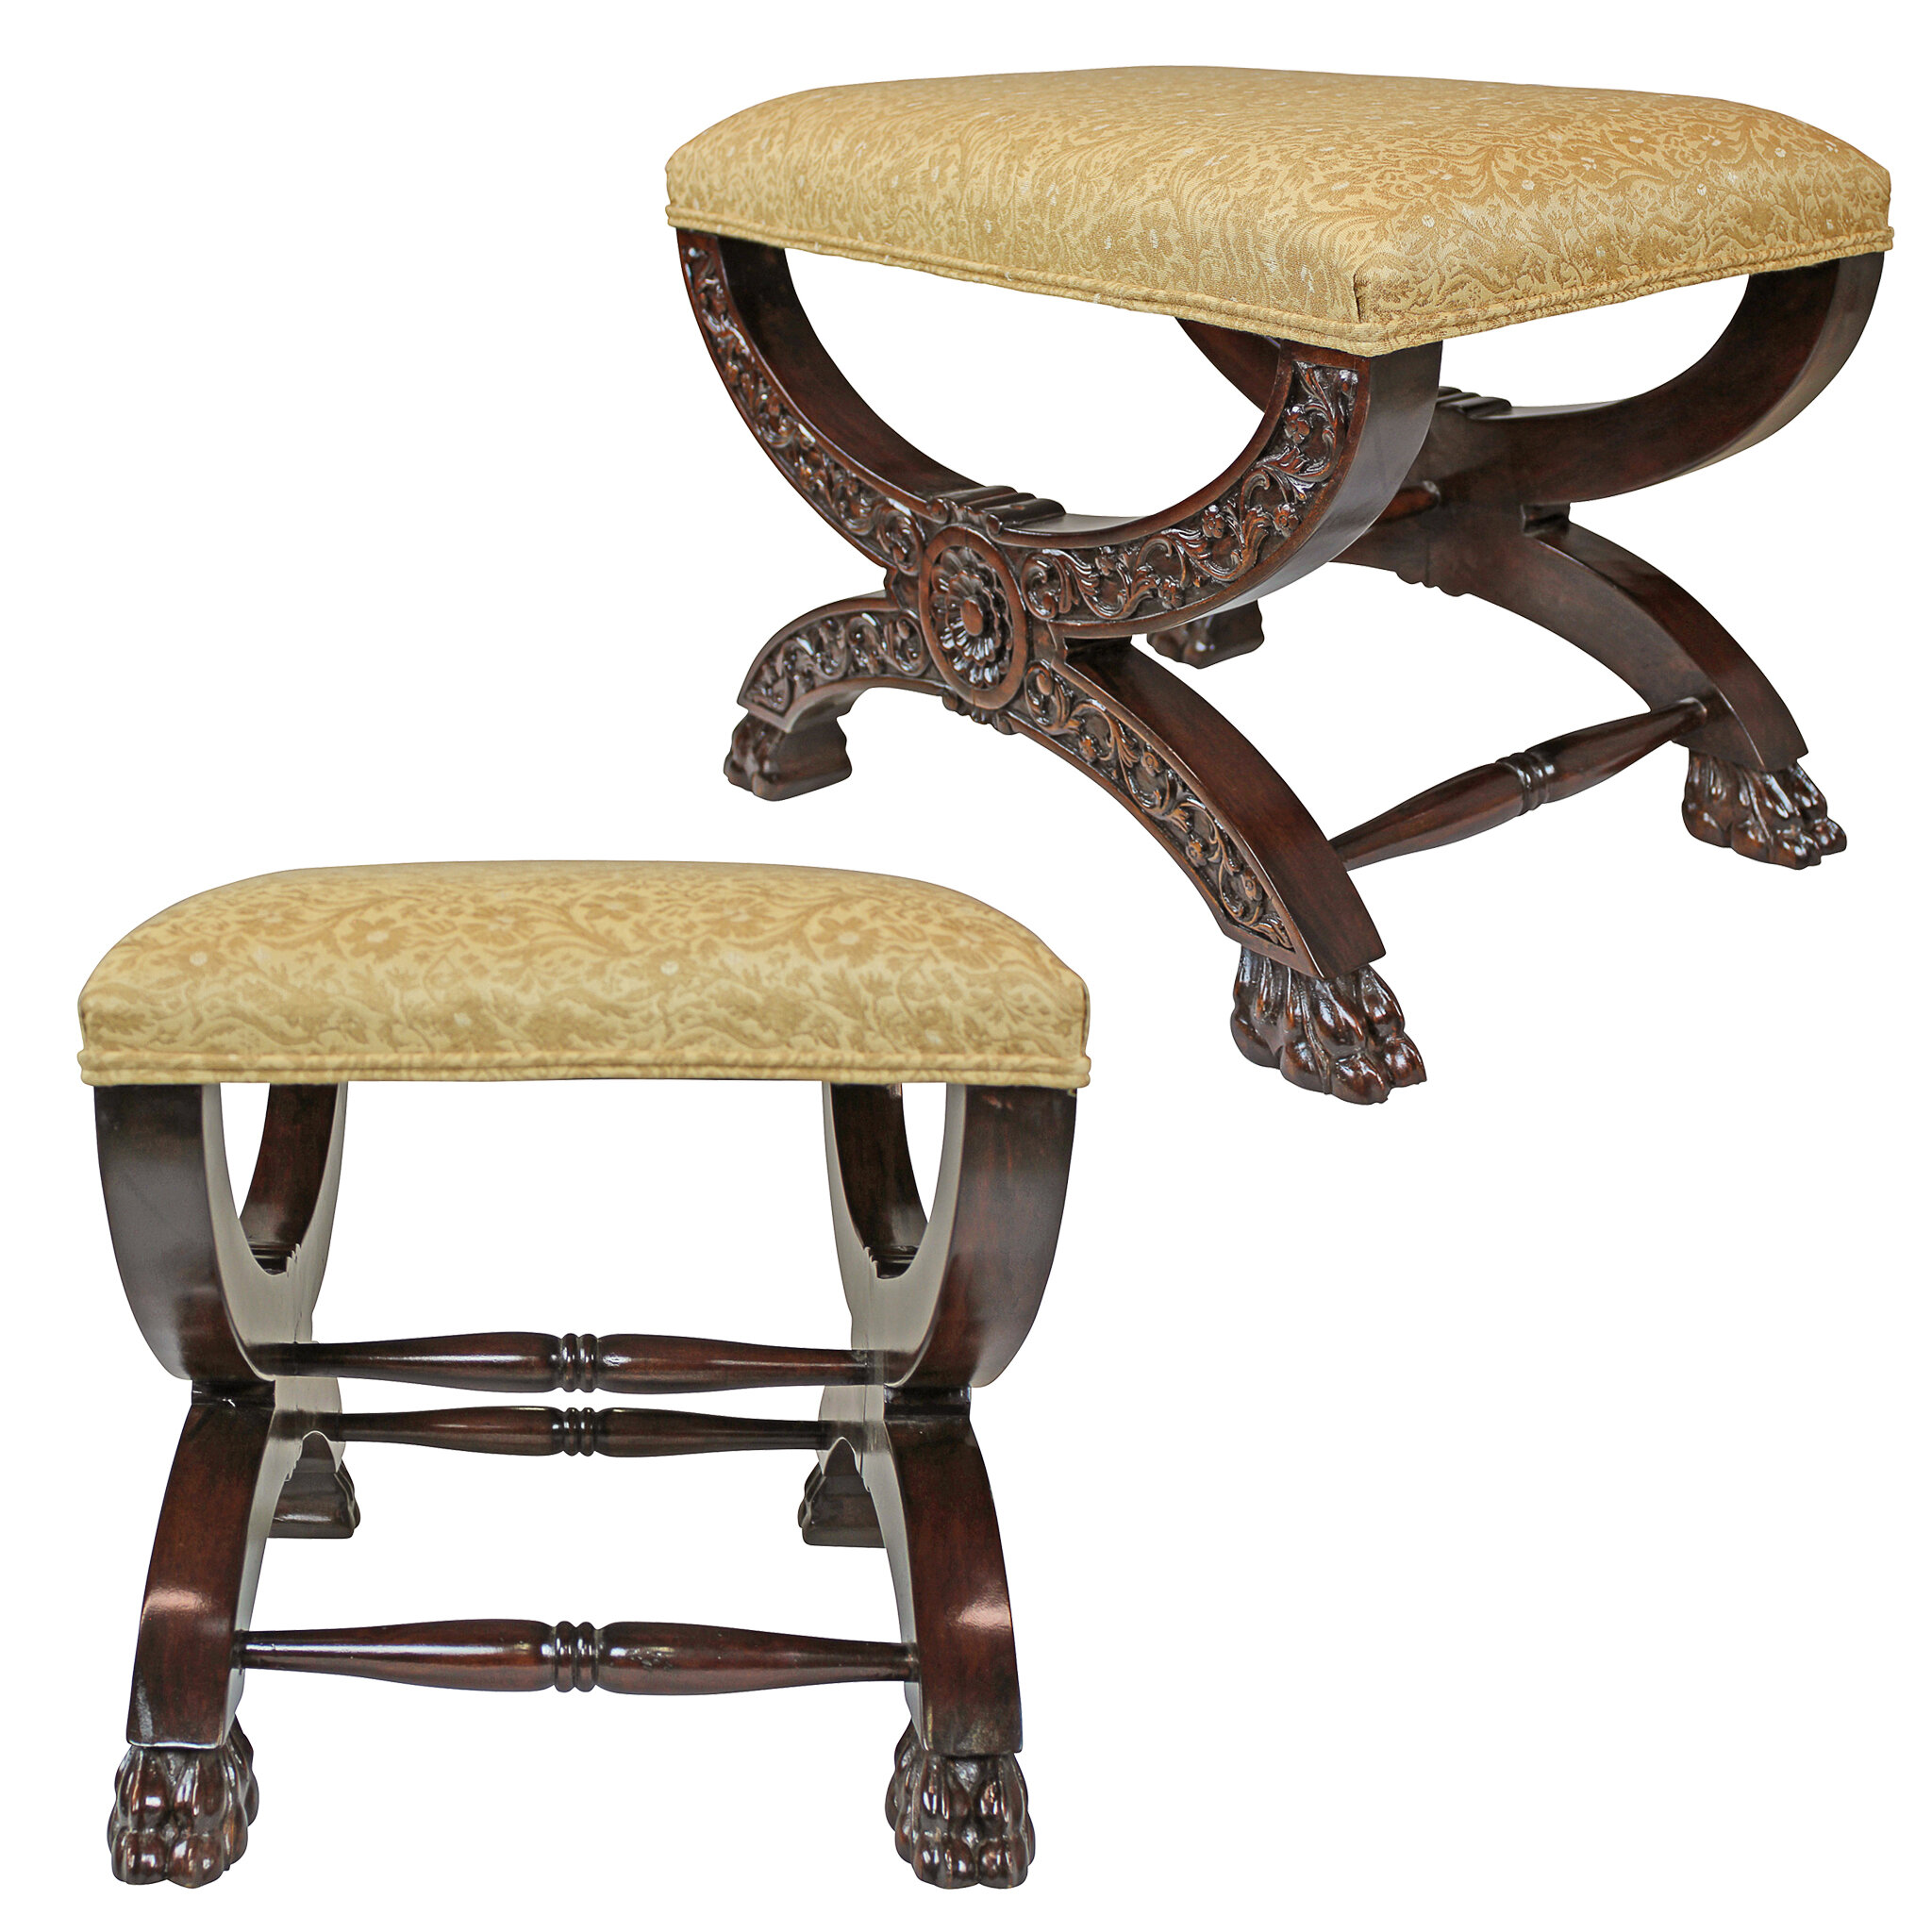 Magnificent Renaissance Curulis Ottoman Vanity Stool Andrewgaddart Wooden Chair Designs For Living Room Andrewgaddartcom